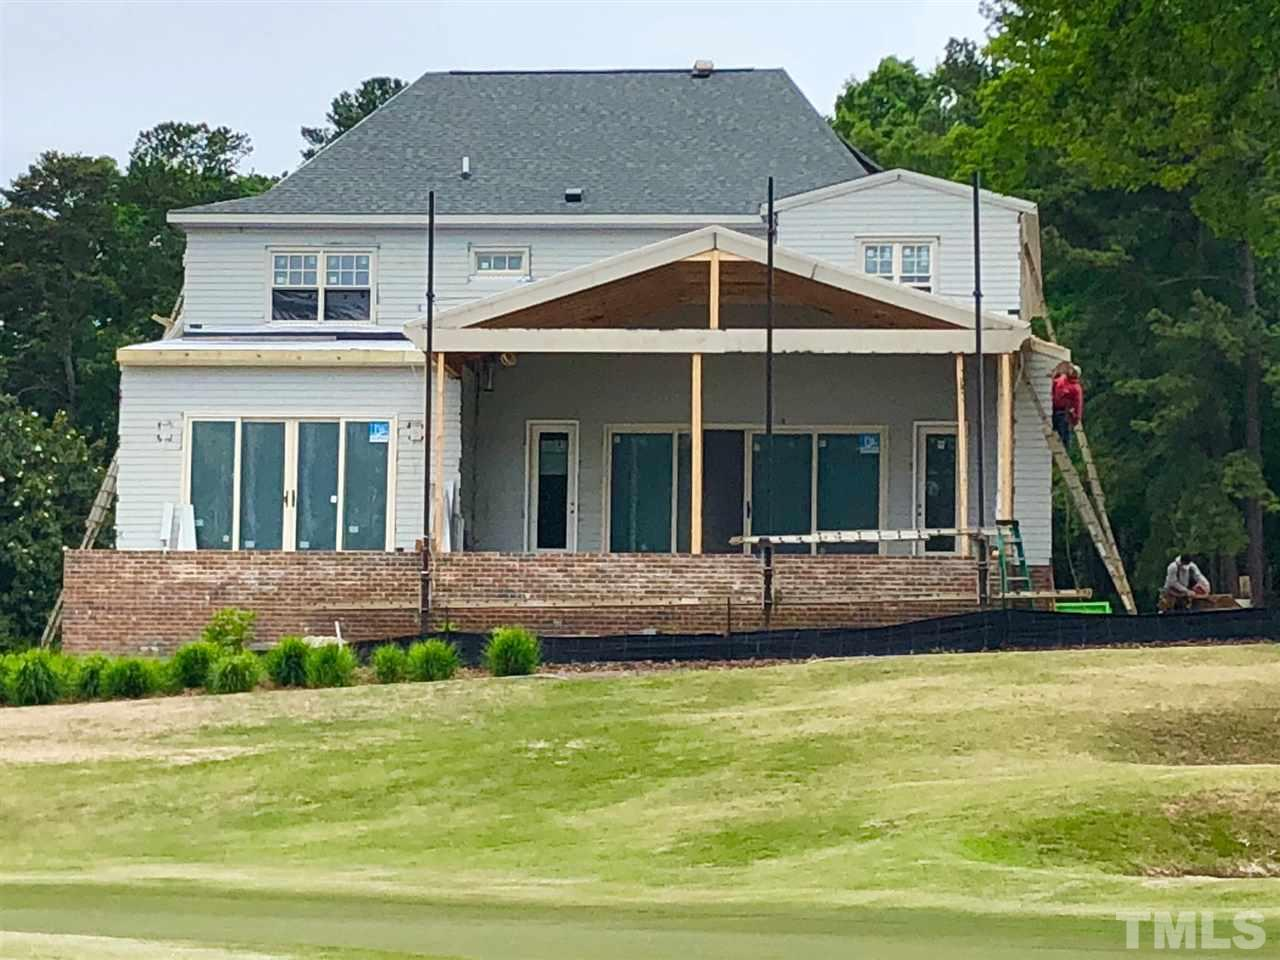 As Seen From The 12th Green Of The Lakes Course  On North Ridge Golf Course.  Screen Porch and Raised Patio Will Have A Wonderful View Of The 12th Greens On The Lakes Course at North Ridge